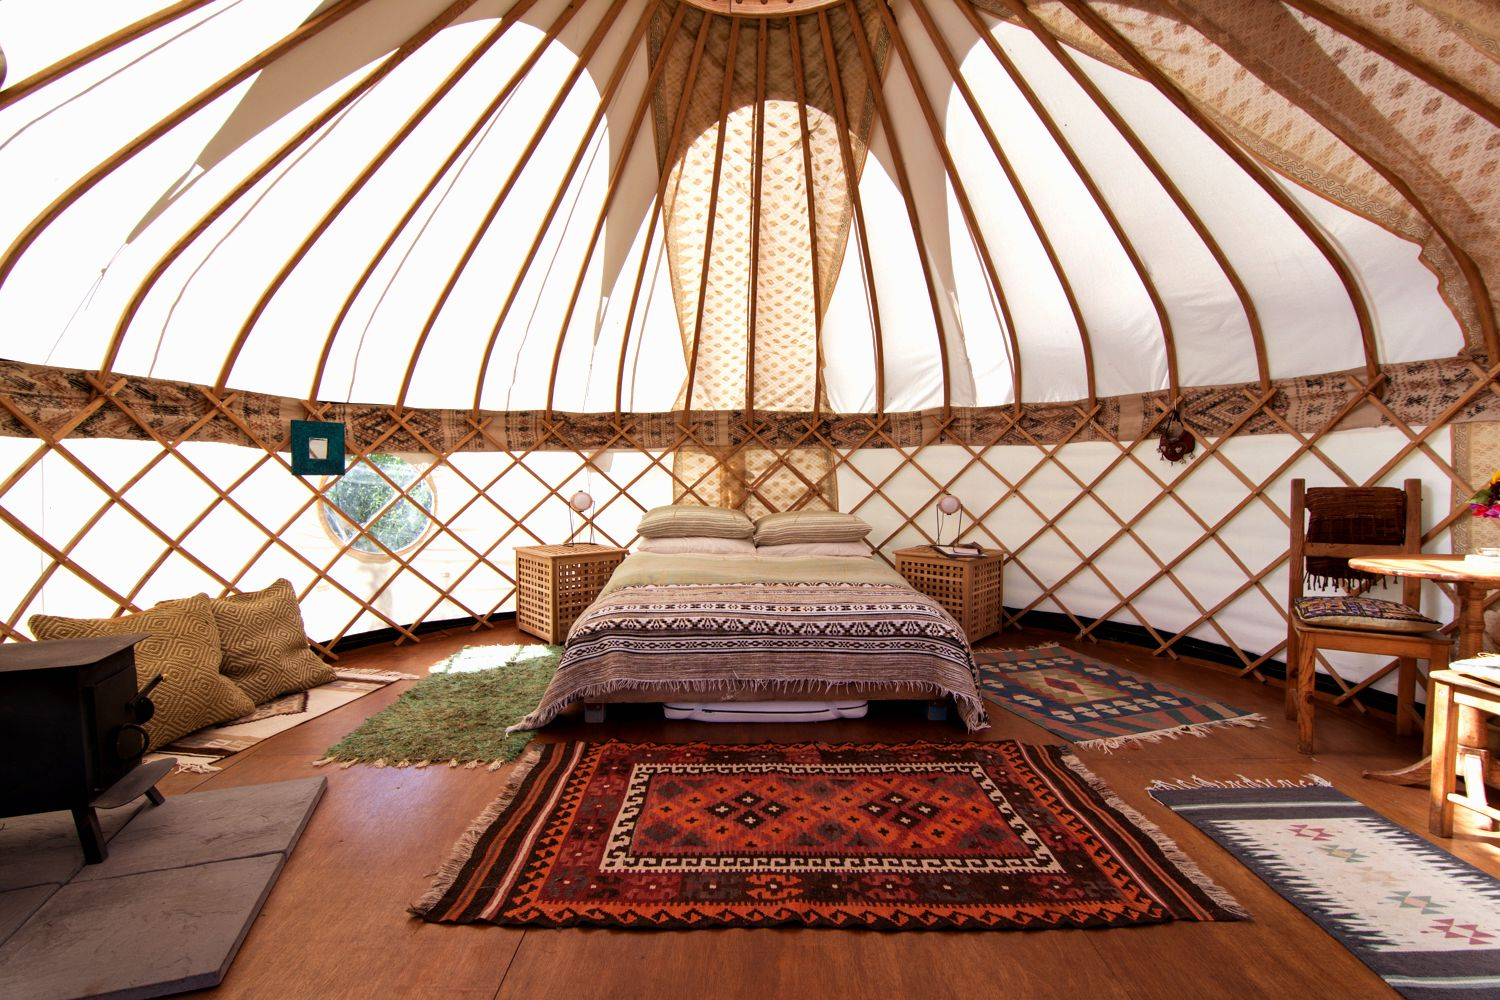 Inside Gilliflower Yurt